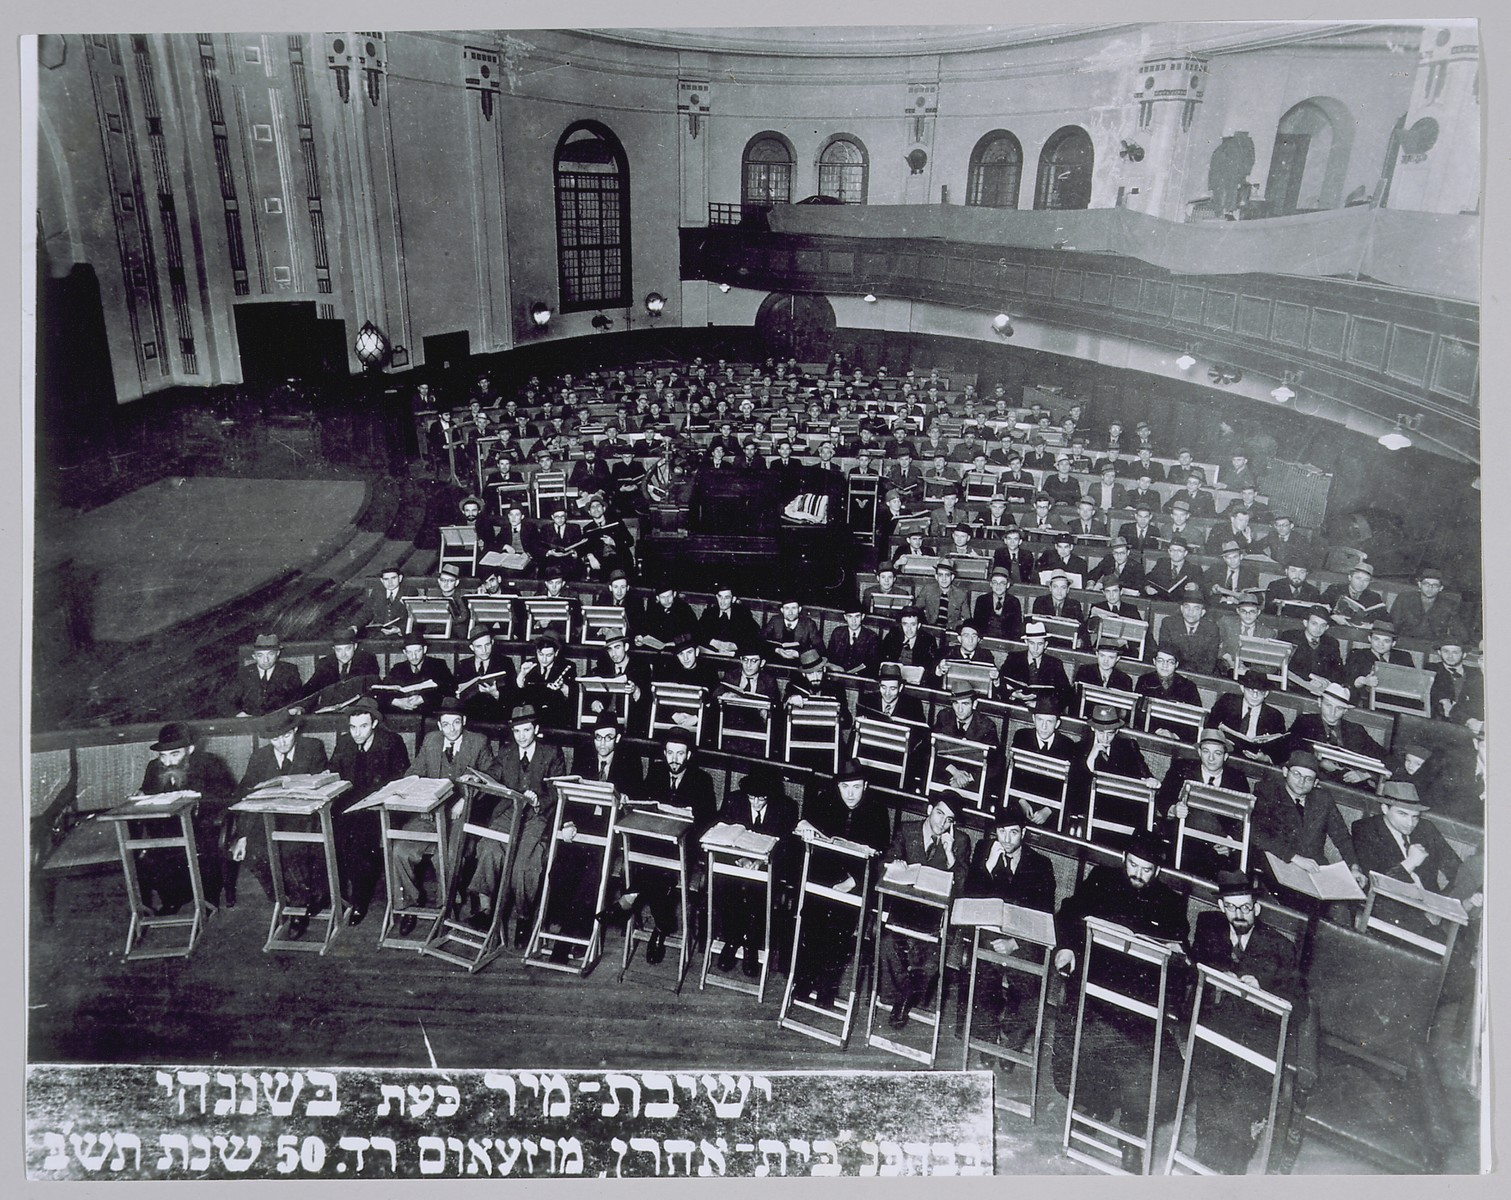 Students and teachers of the exiled Mir yeshiva study in the sanctuary of the Beth Aharon synagogue on Museum Road in Shanghai.  Among those pictured are: Rabbi Chezkel Lewensztejn (front row, first from the left); Rabbi Chaim L. Szmuelowicz, acting dean (front row, second from the right); and Rabbi J.D. Epstein, secretary (front row, first from the right).